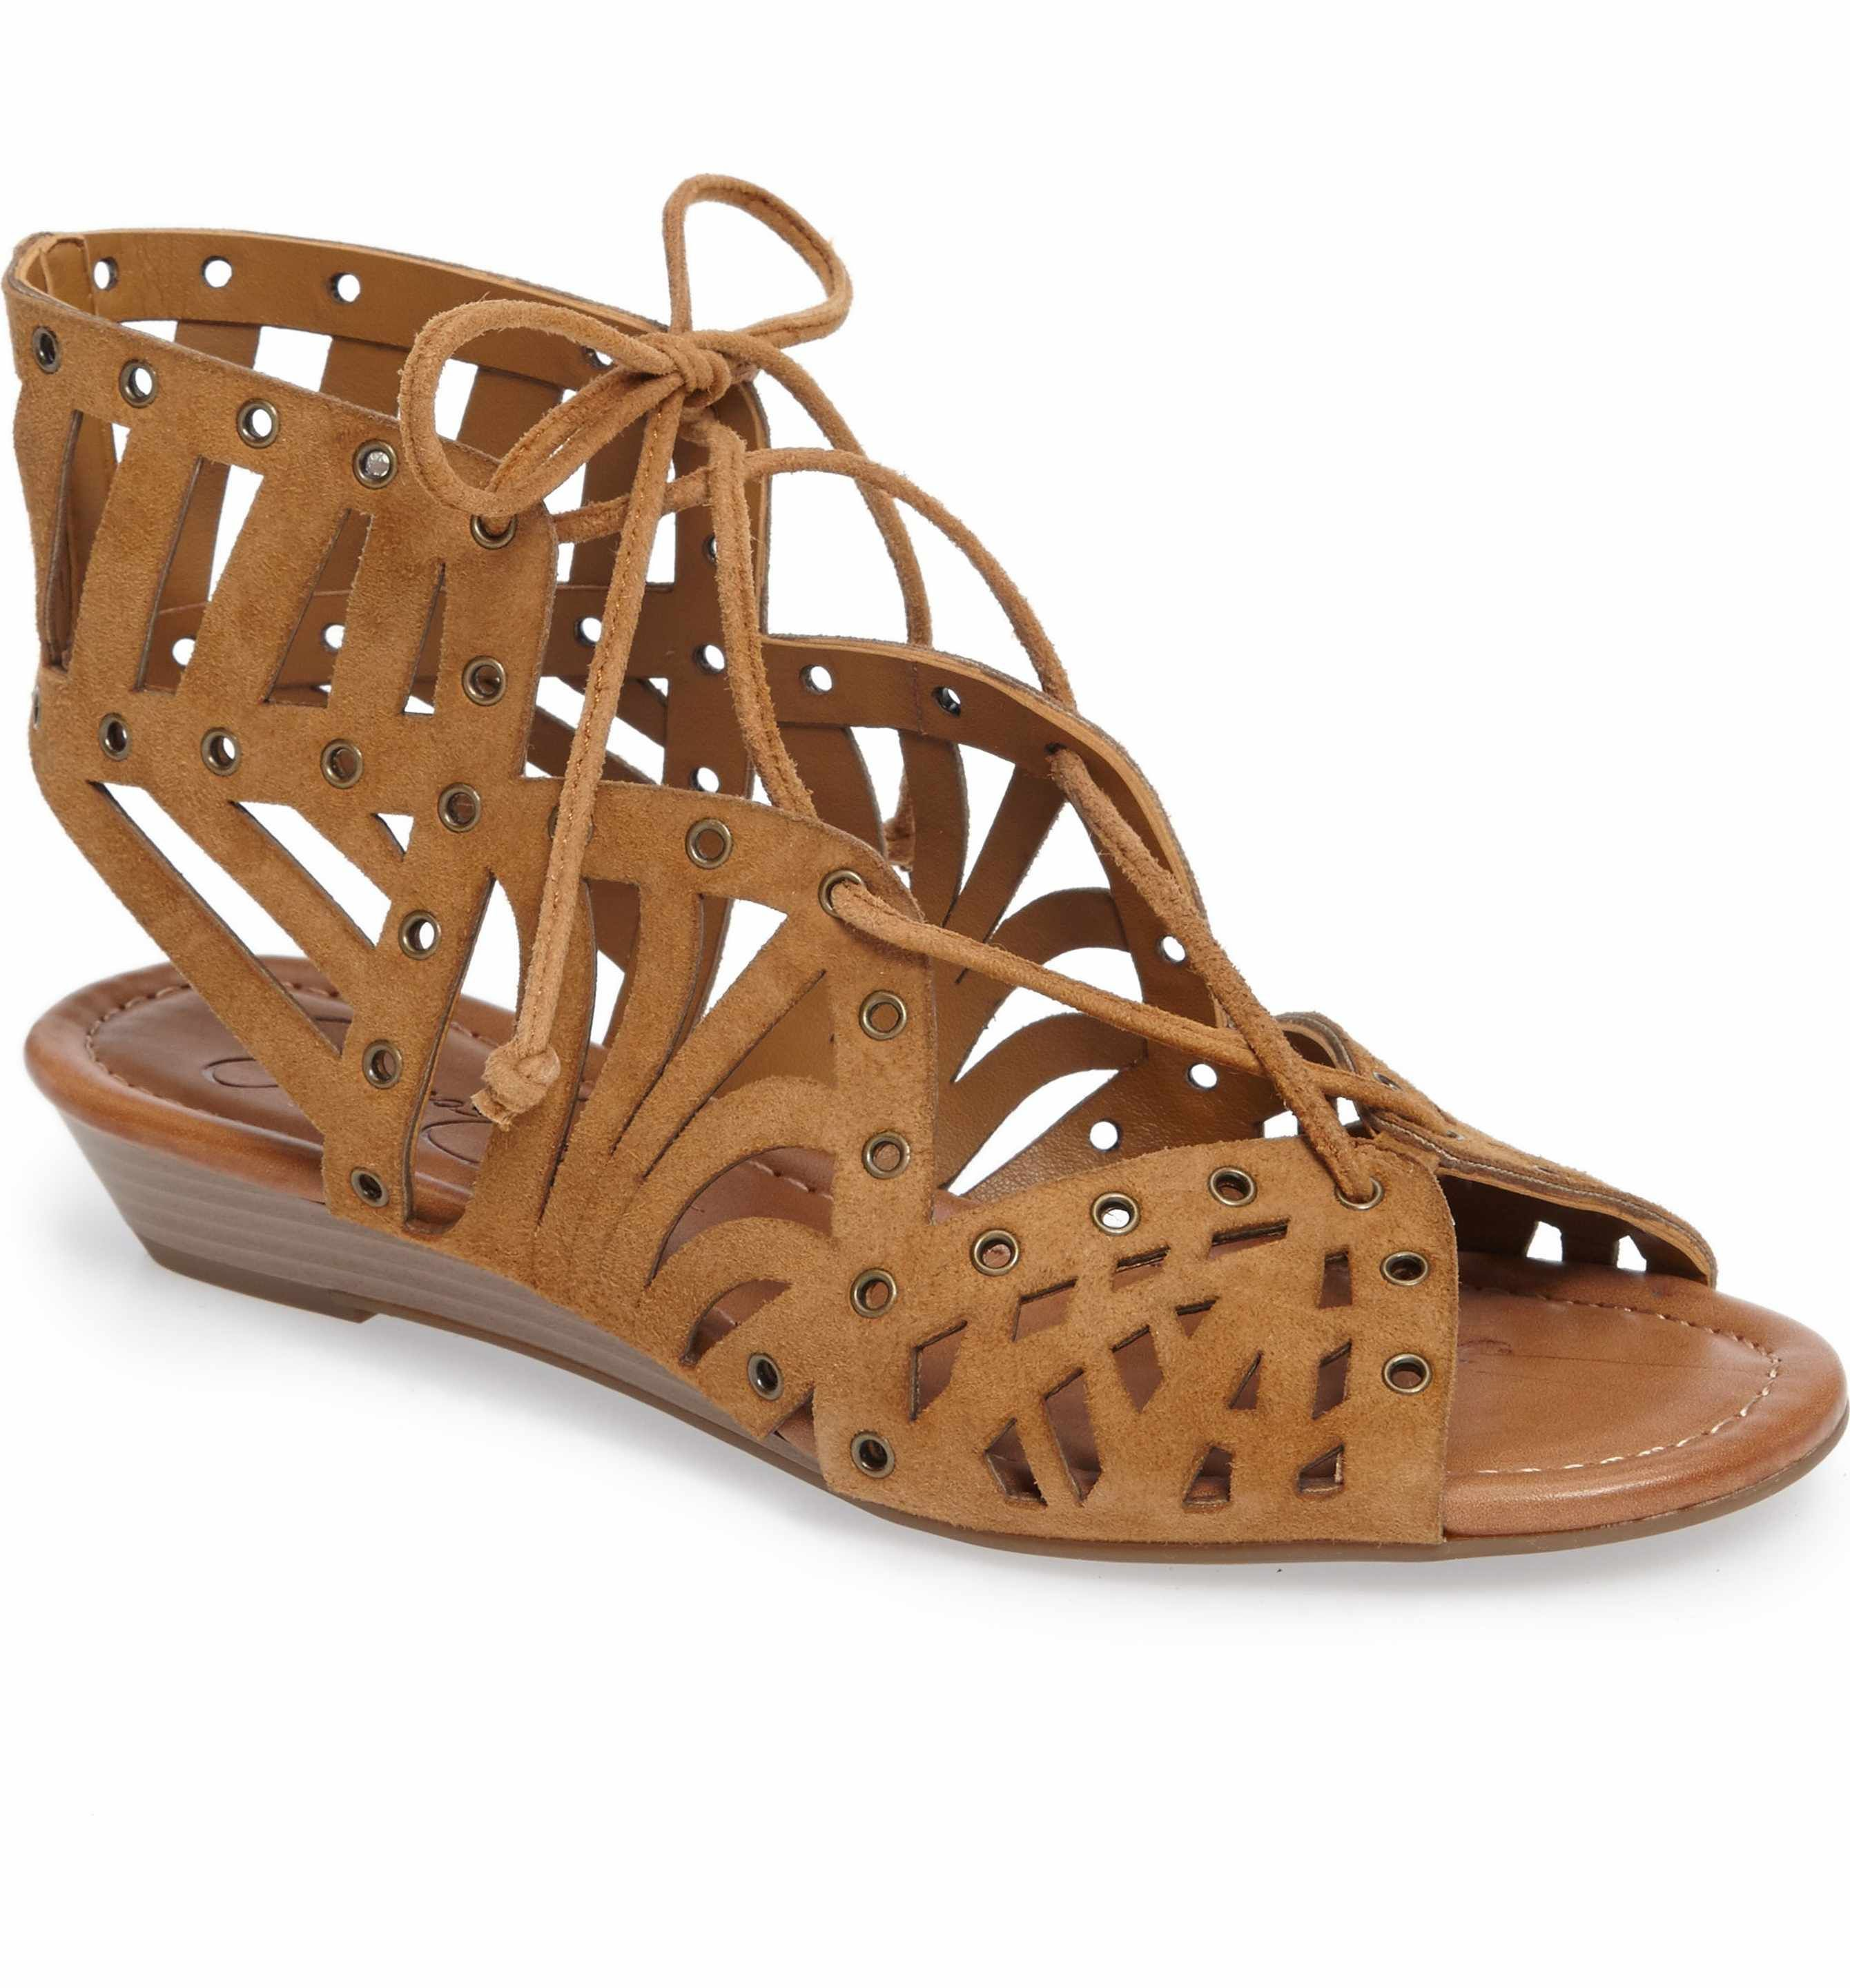 7202304b5b9d21 8.5 honey brown suede Main Image - Jessica Simpson Lalaine Ghillie Lace  Sandal (Women)